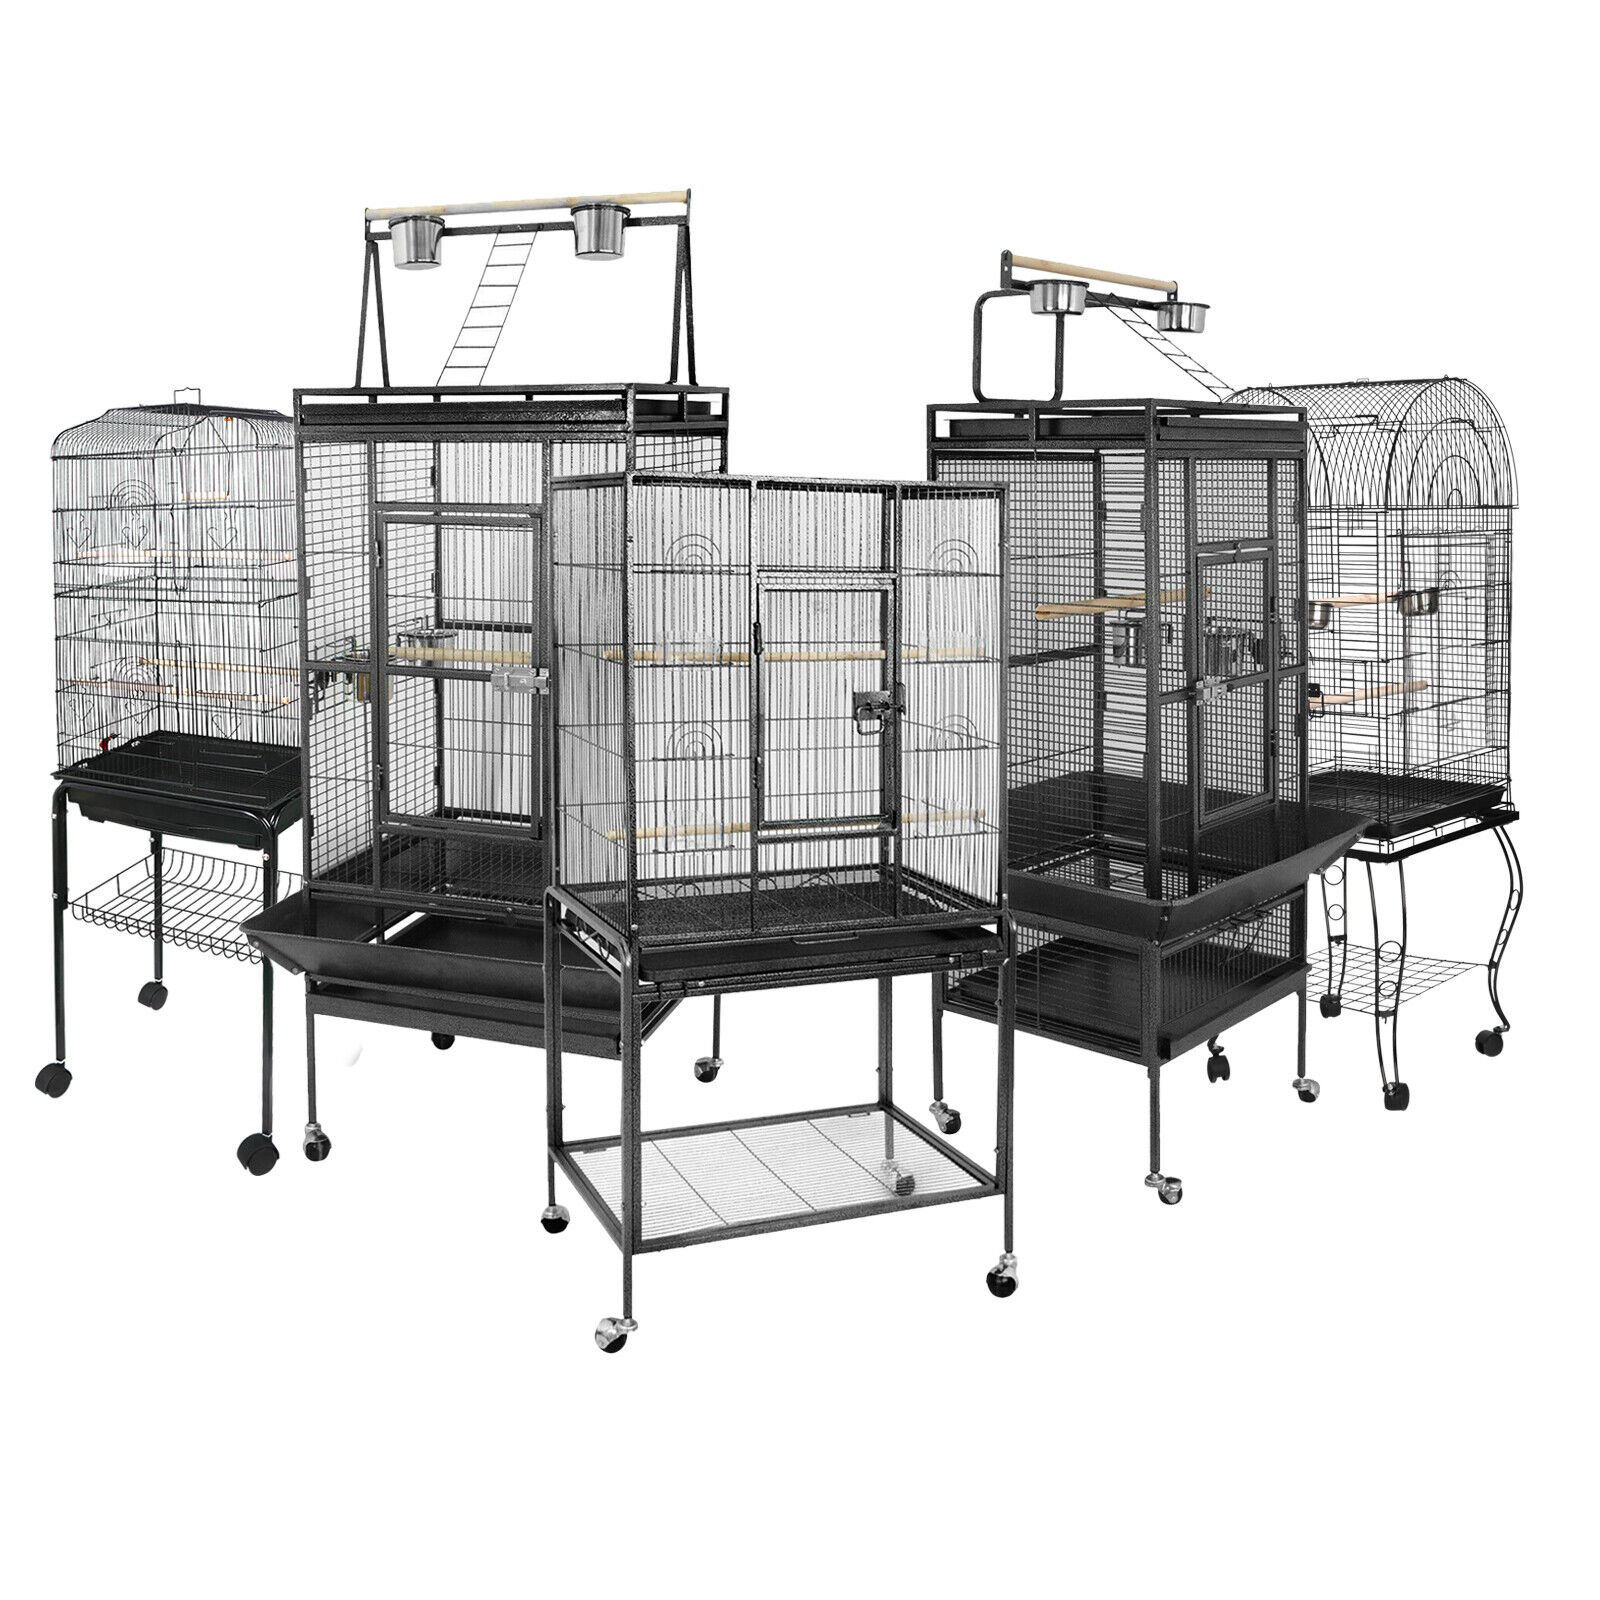 Multiple Sizes Durable Steel Bird Cage Best Place for Birds Large Parrot Cage Bird Supplies